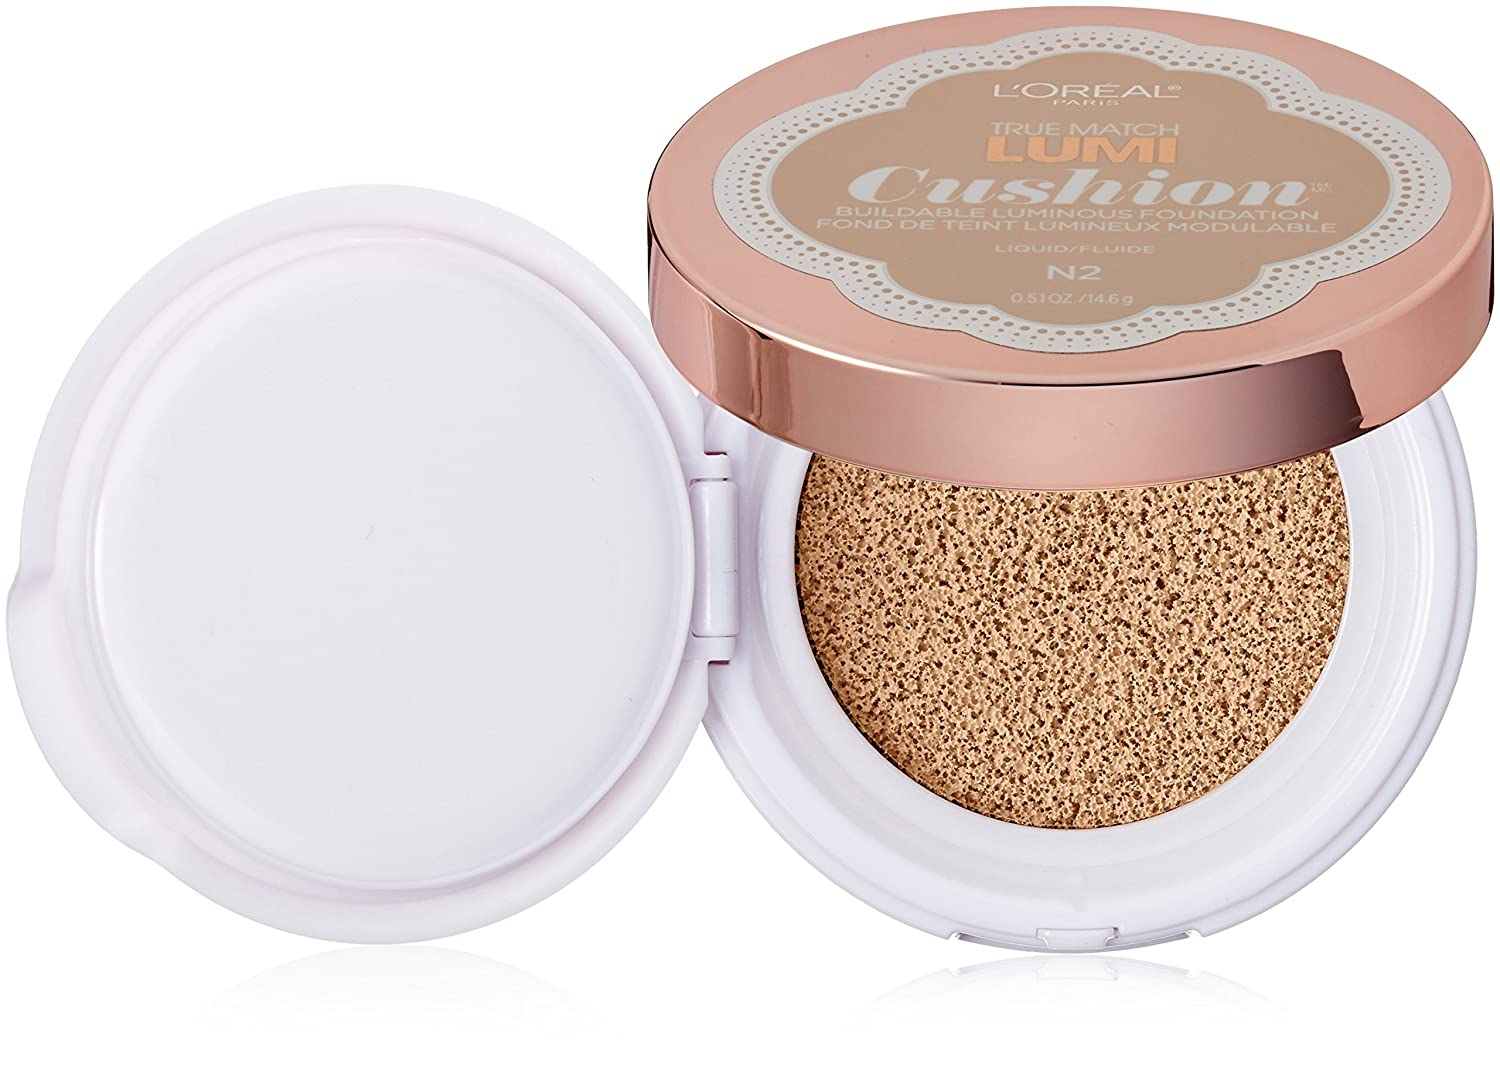 L'Oréal Paris True Match Lumi Cushion Foundation, N2 Classic Ivory, 0.51 oz.